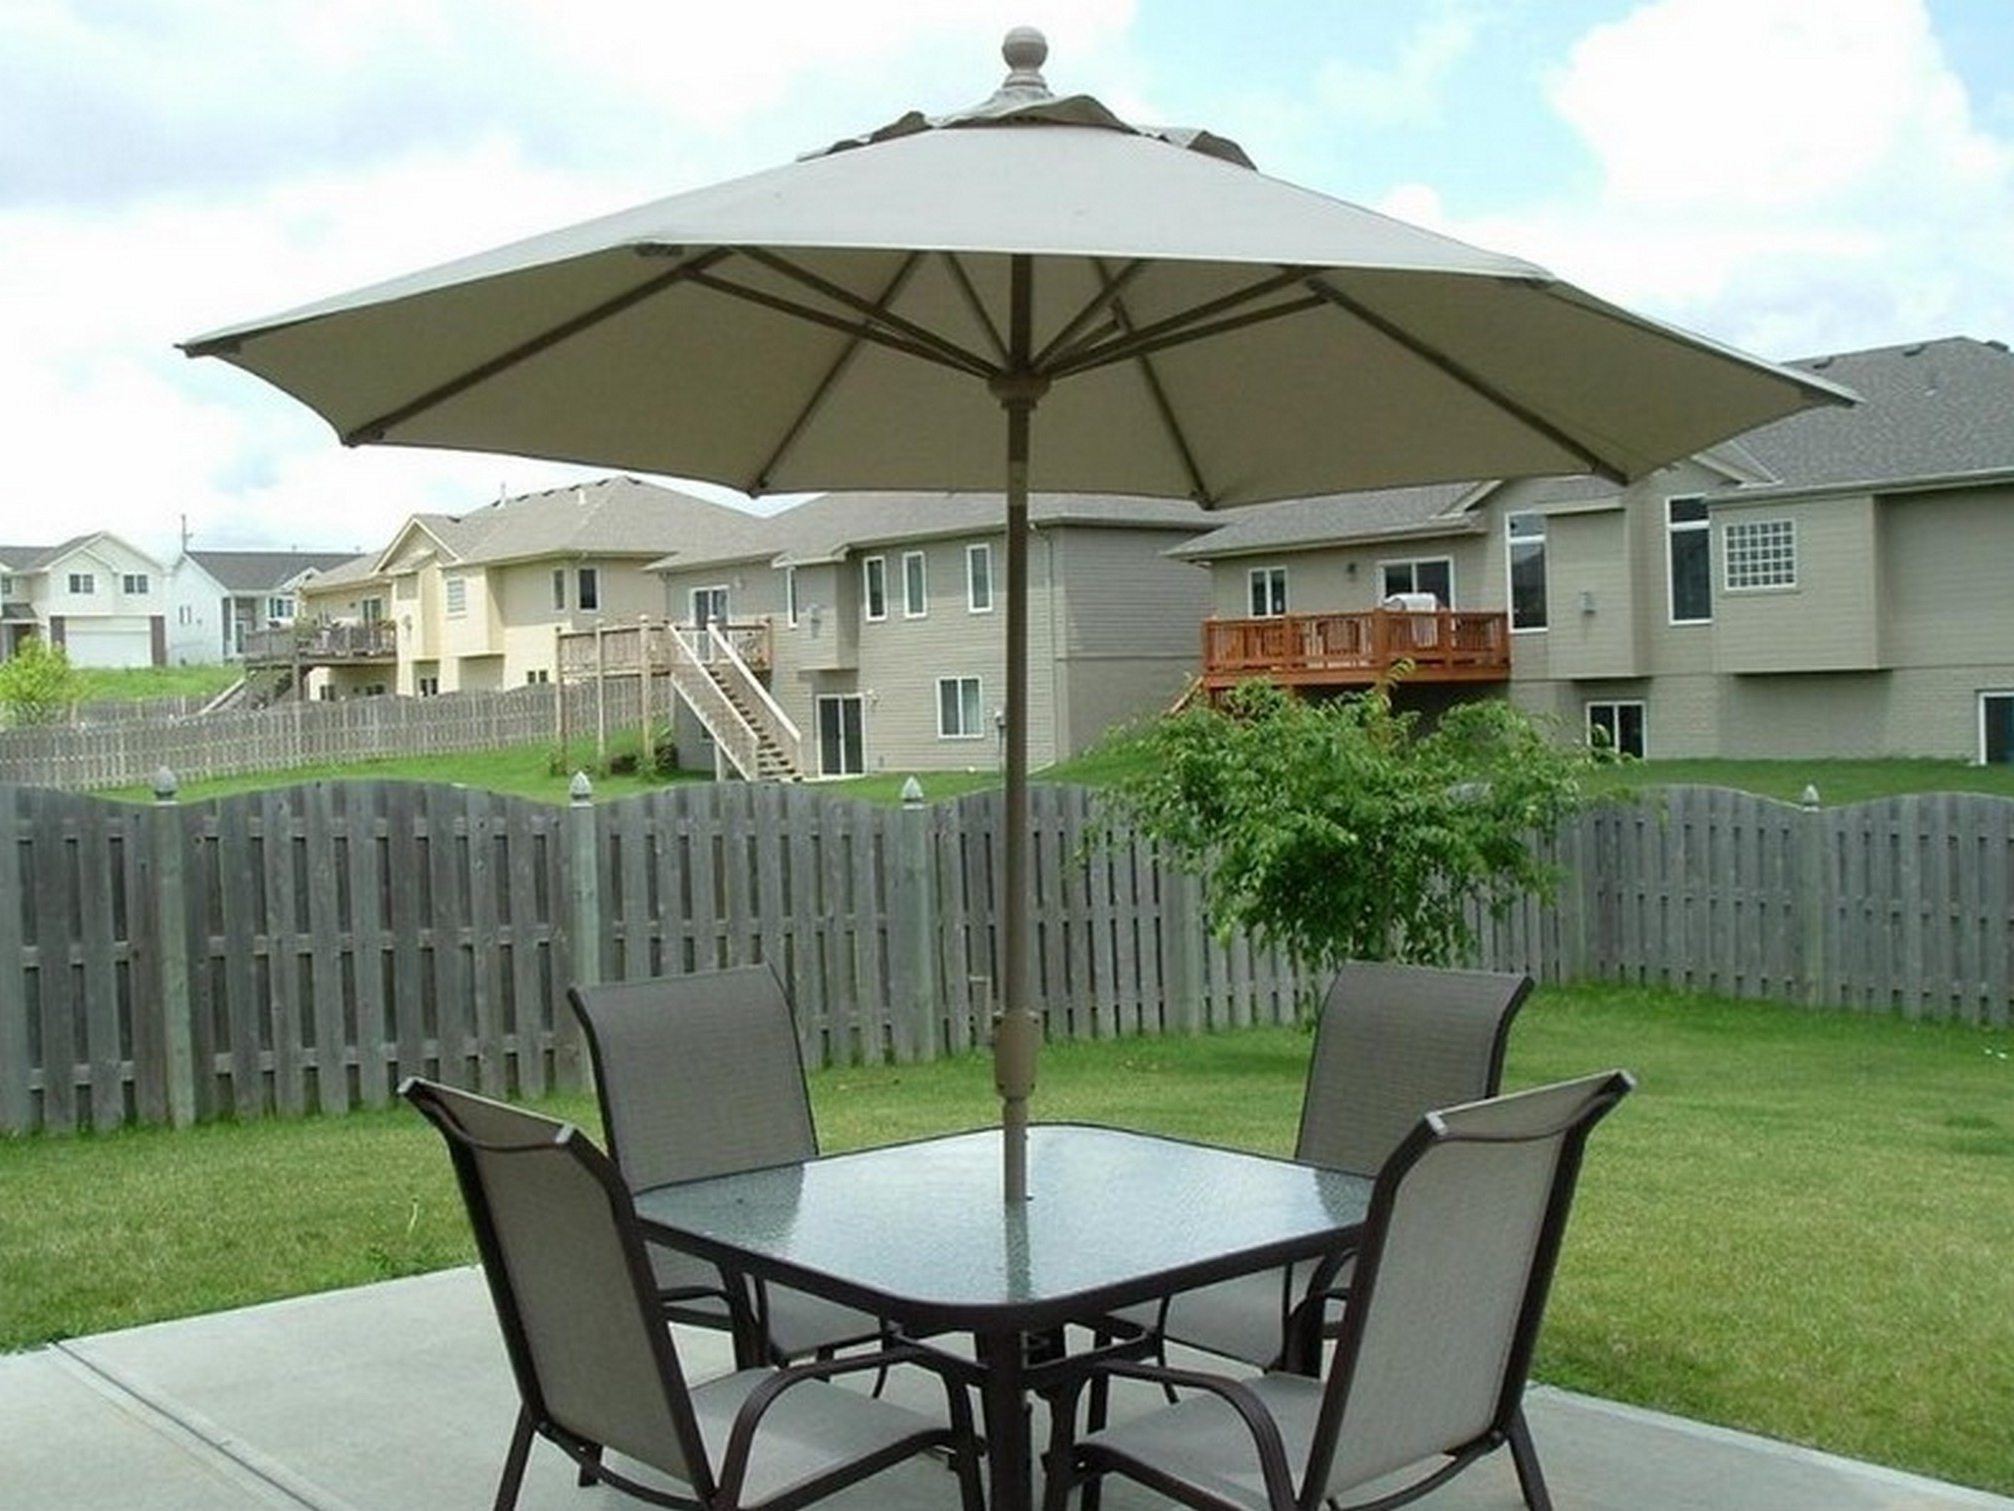 Free Standing Umbrellas For Patio Intended For Recent The Most New Patio Table Umbrella Property Ideas – Liberdadi (View 7 of 20)